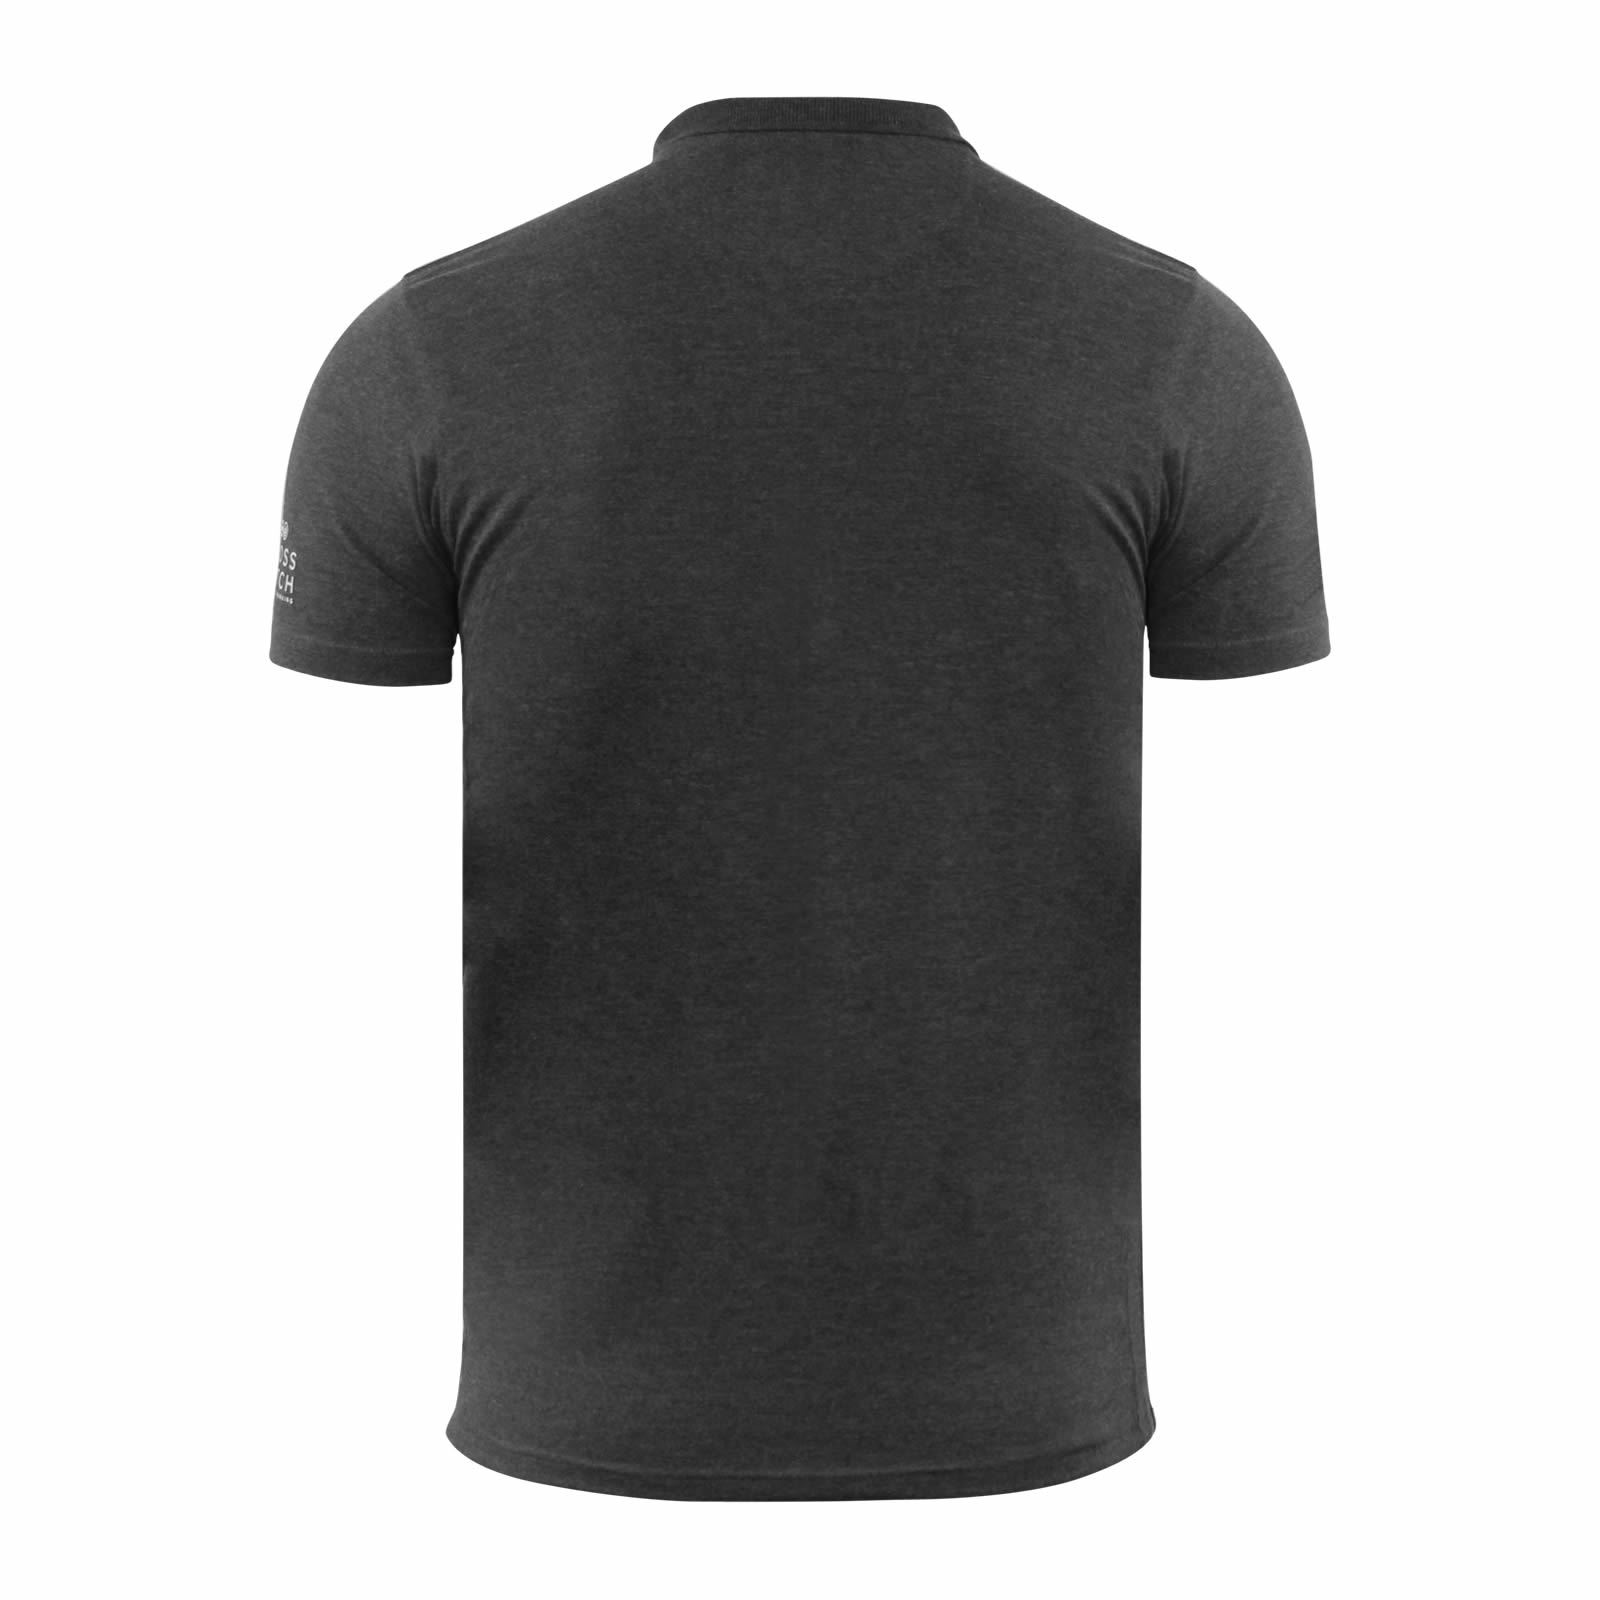 Crosshatch-Mens-Polo-T-Shirt-Pique-Polo-Cotton-Collared-Short-Sleeve-T-Shirt thumbnail 47